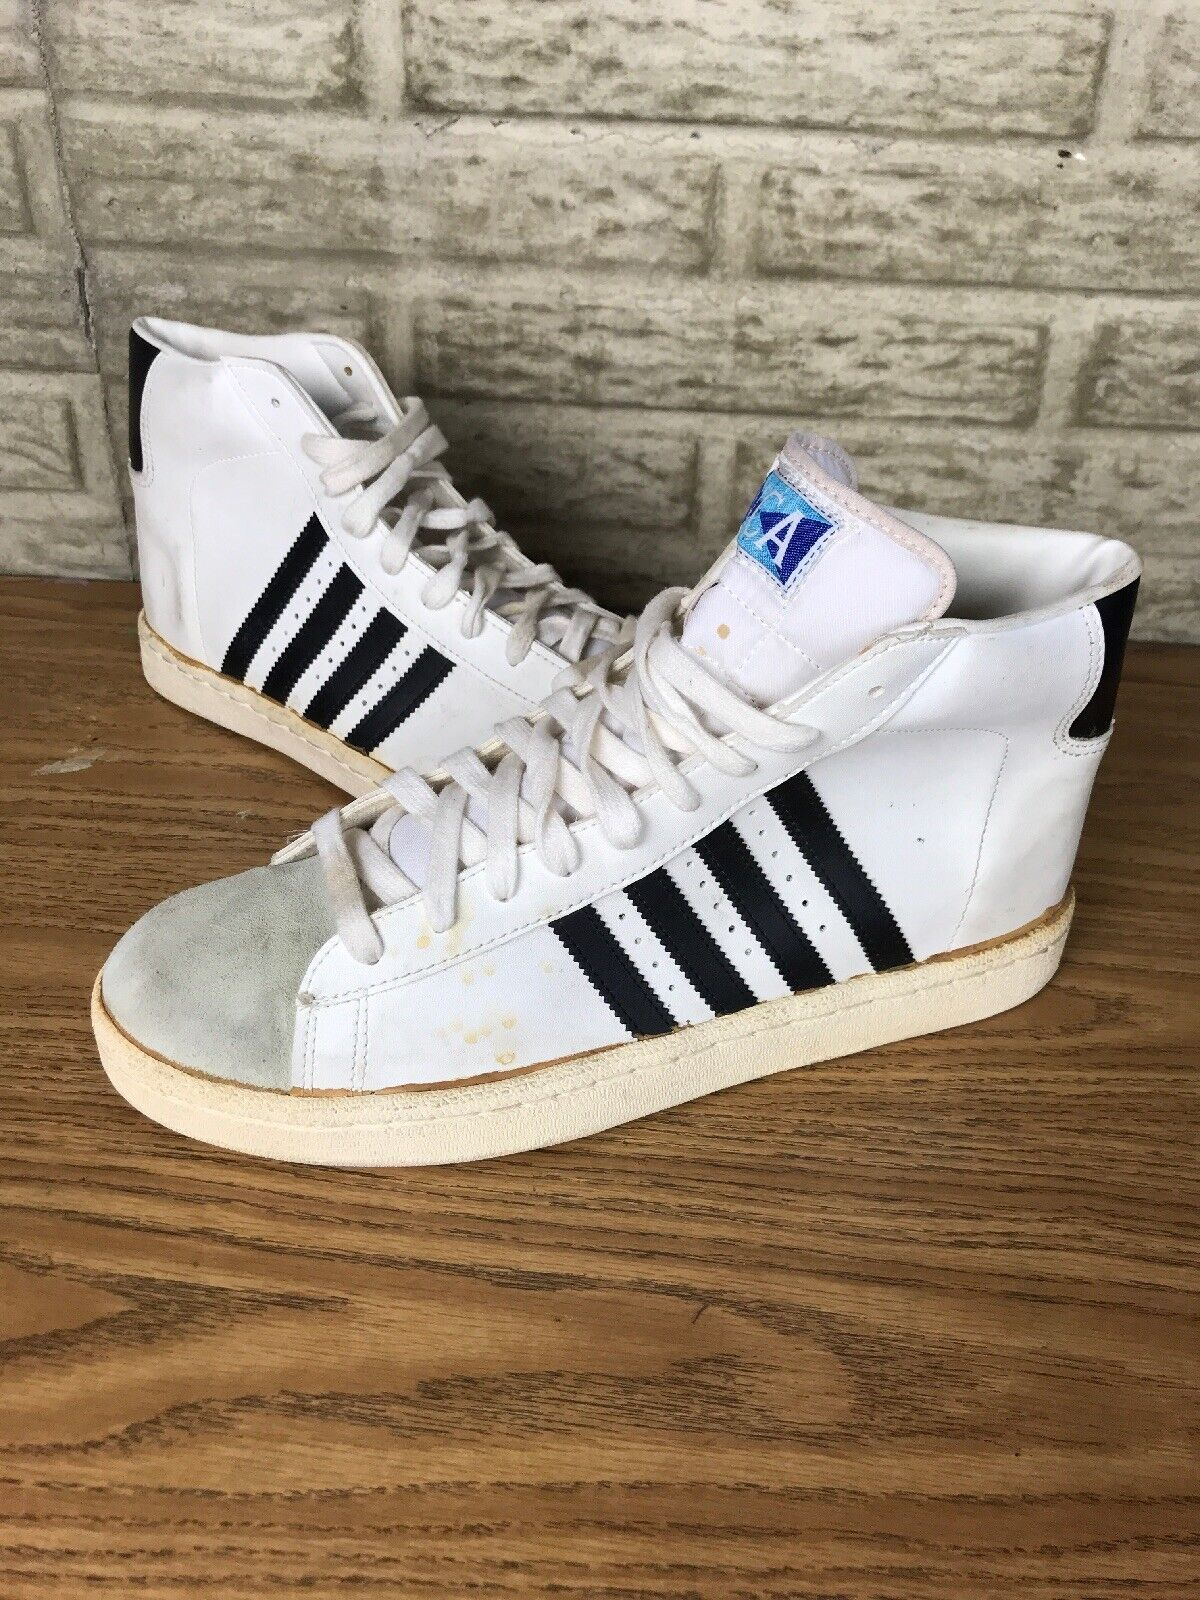 Vintage 80s Made In Korea High Top shoes White NCA Cheerleading Mens Sz 12